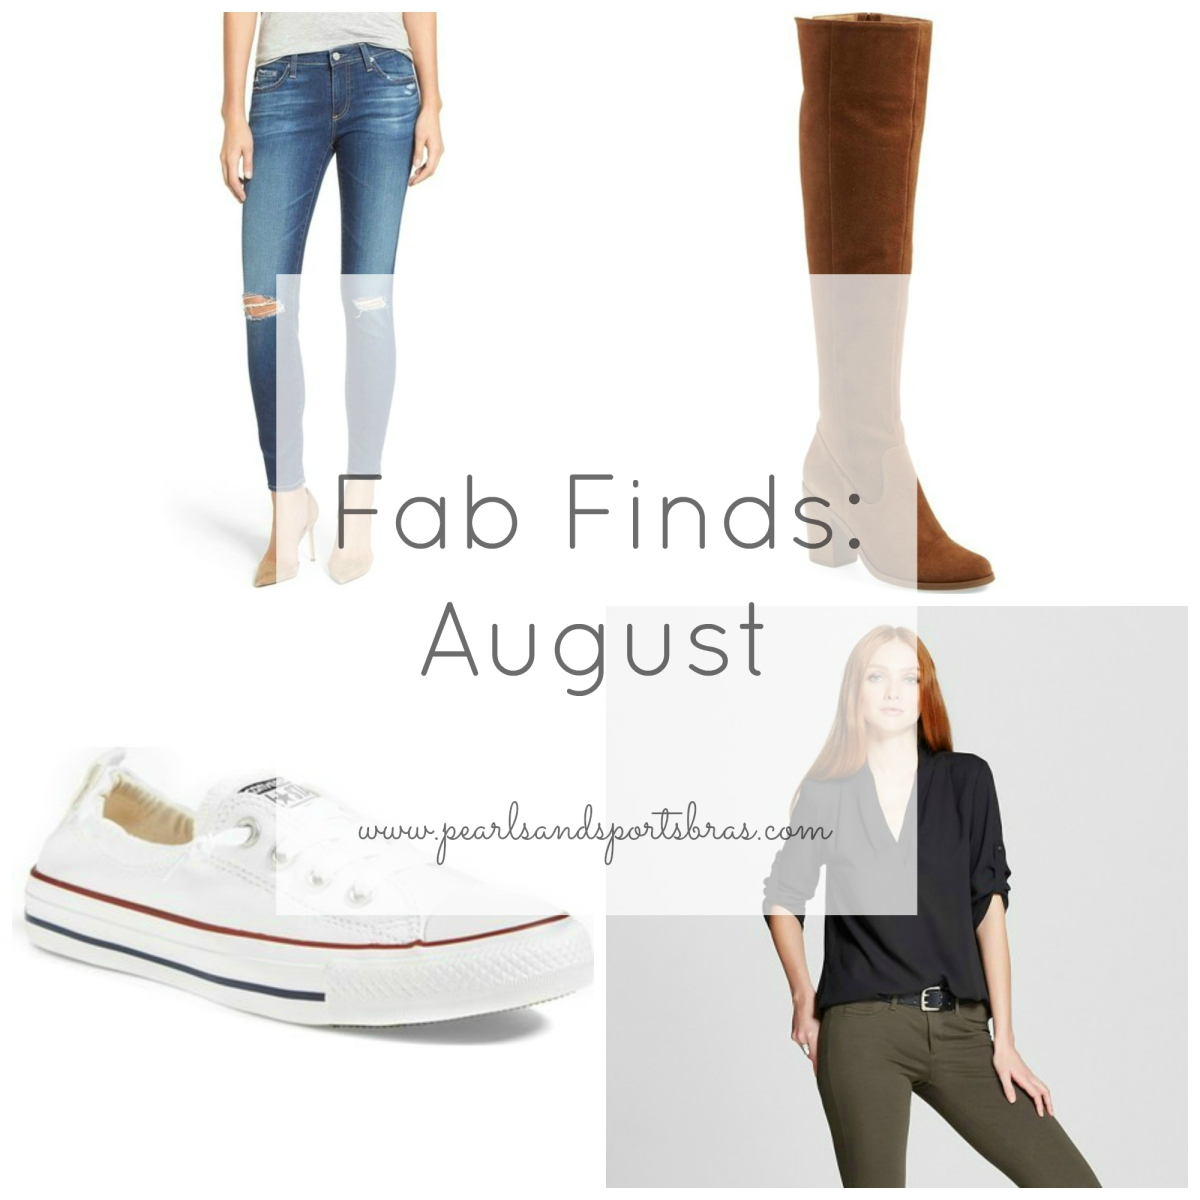 Fab Finds August |www.pearlsandsportsbras.com|